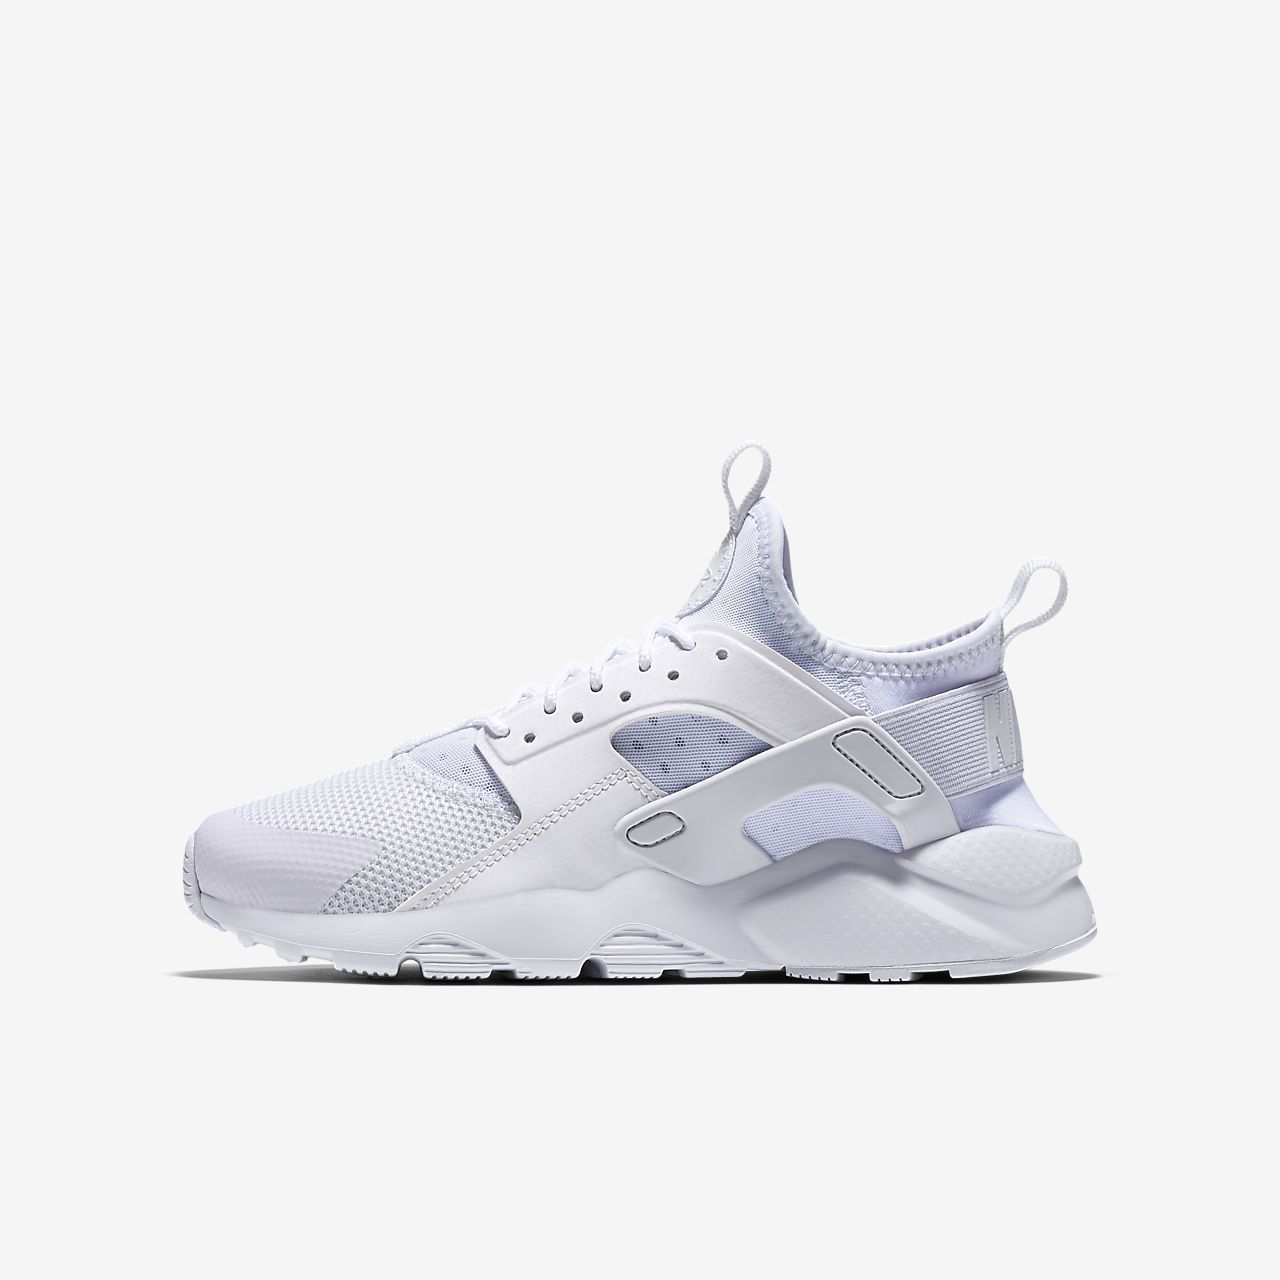 premium selection 9e7ec a578c ... Nike Air Huarache Ultra Older Kids Shoe